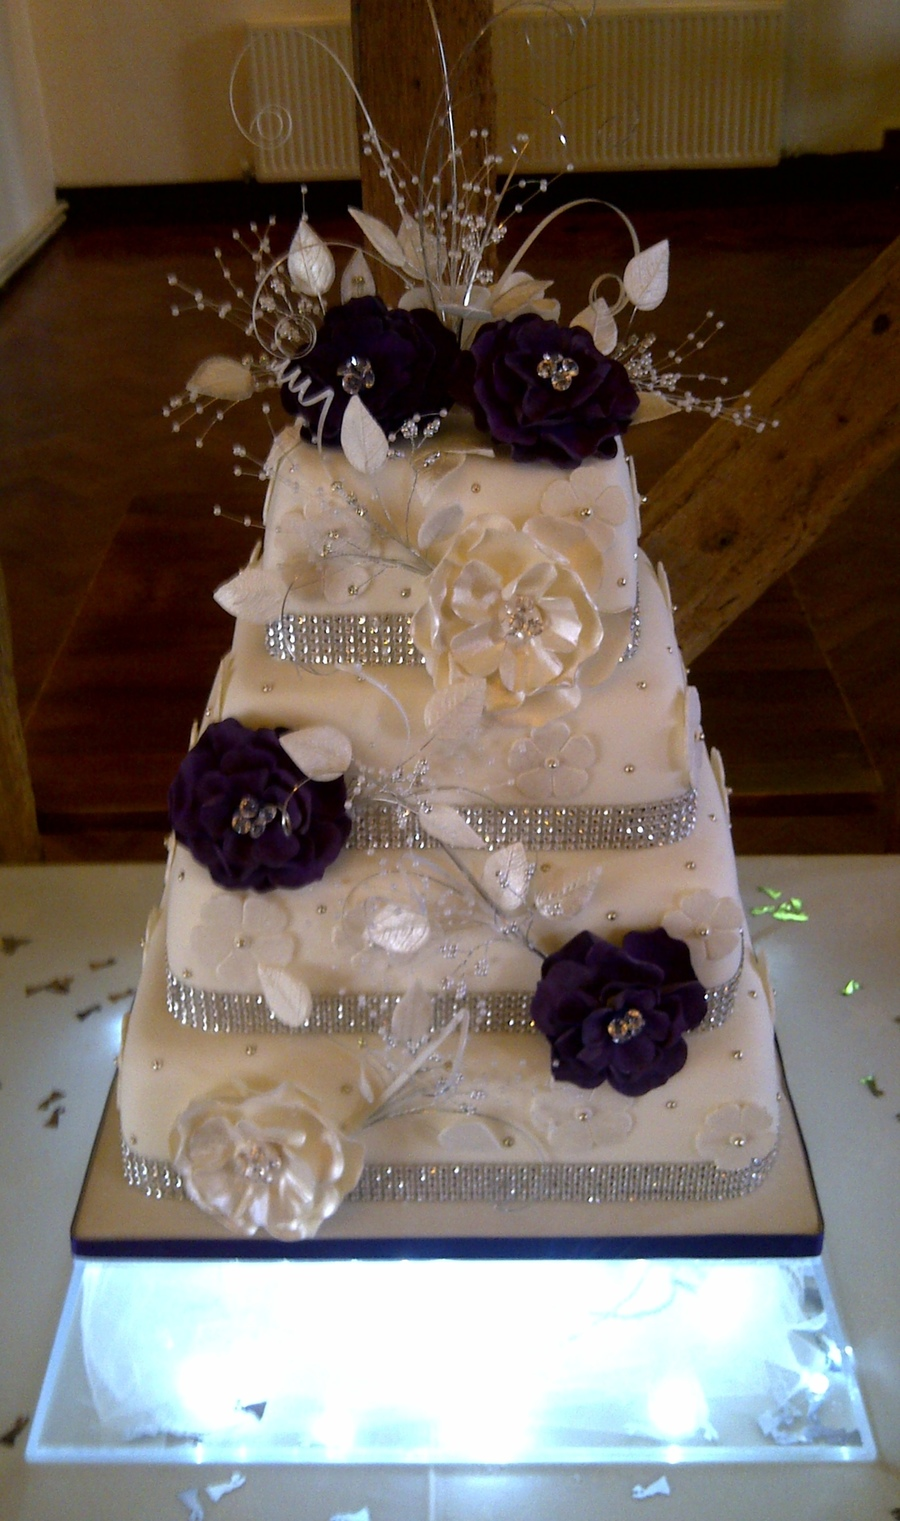 4 Tier Sponge Wedding Cake All Flowers And Decorations Are Handmade By Me on Cake Central